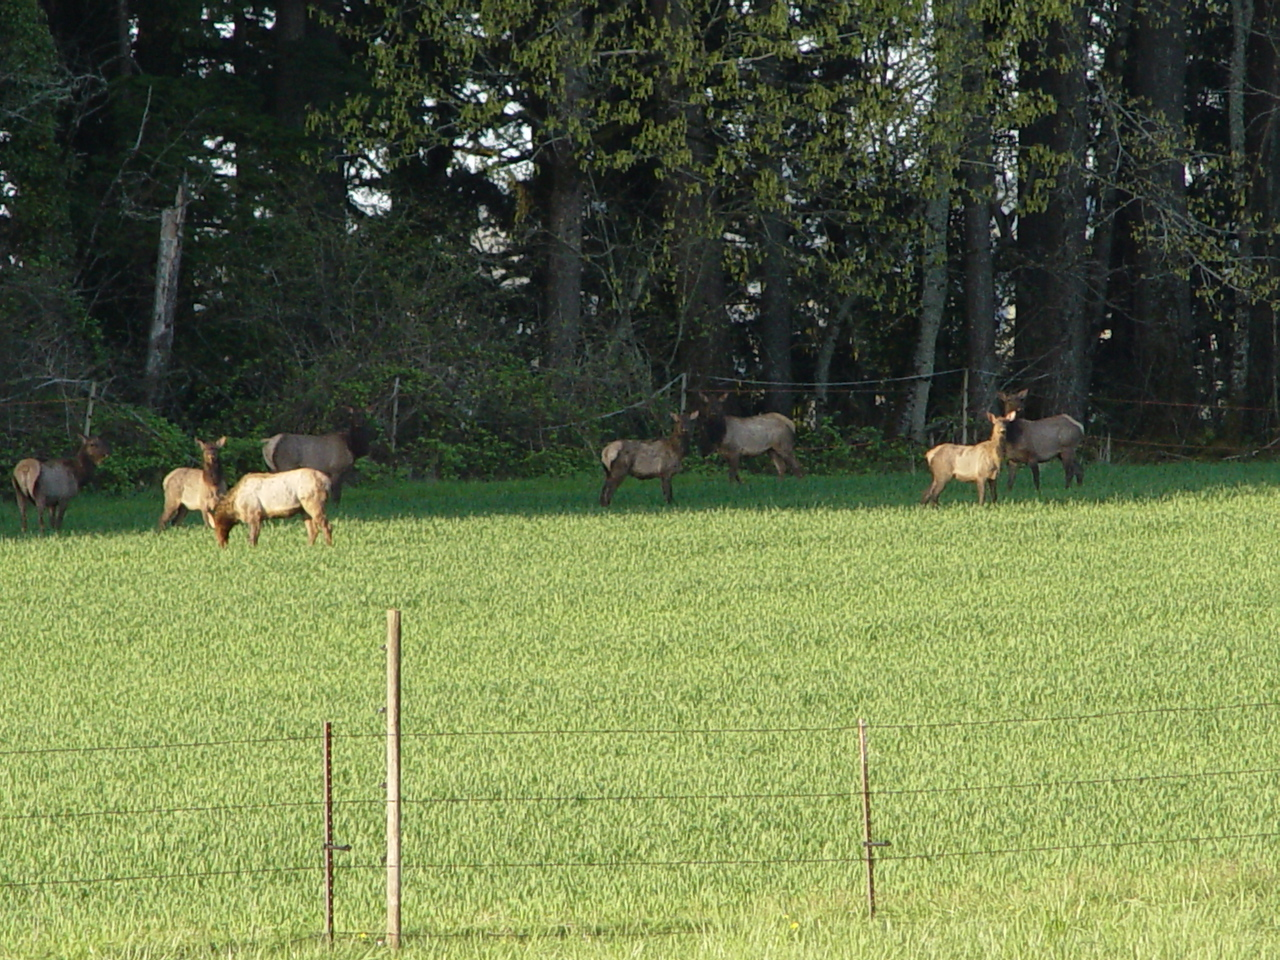 Elk in the Neighbours field - A closer view.